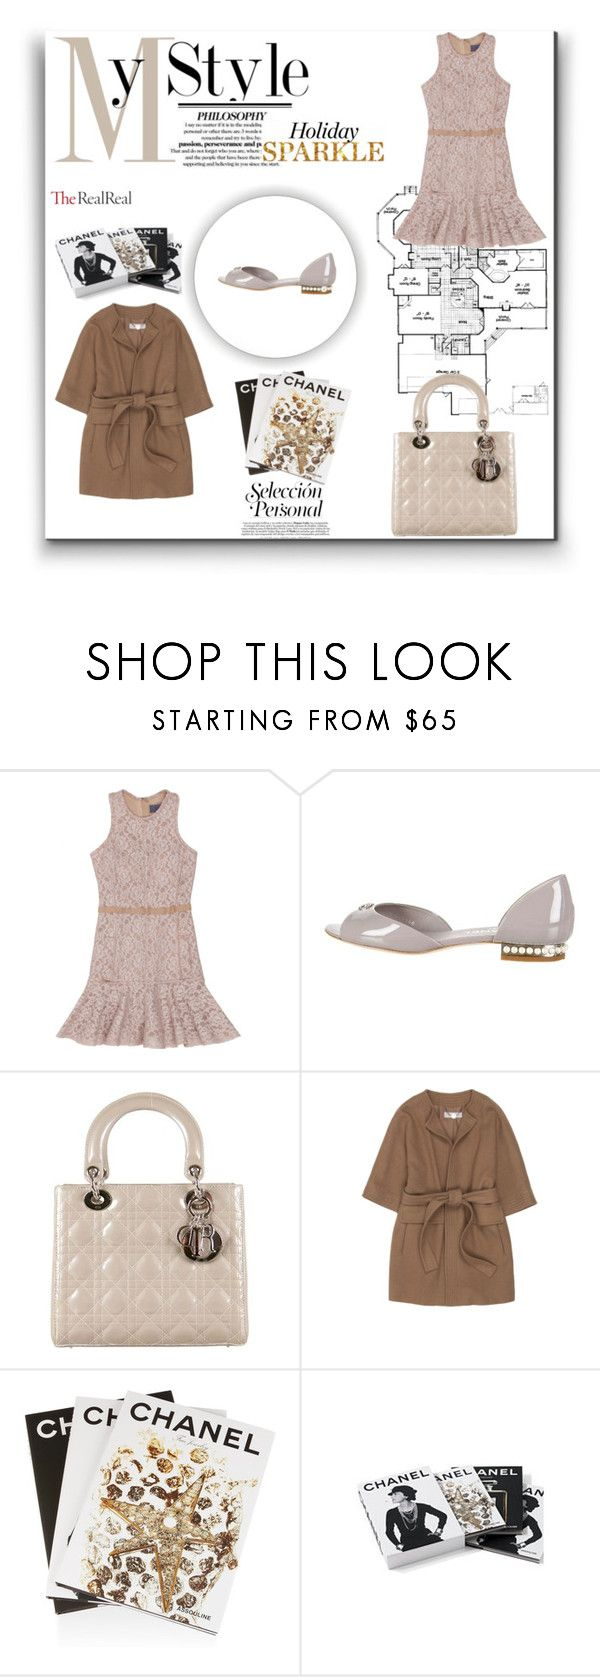 """Holiday Sparkle With The RealReal: Contest Entry"" by adelinaaaa ❤ liked on Polyvore featuring Lanvin, Chanel, Christian Dior, STELLA McCARTNEY and Assouline Publishing"